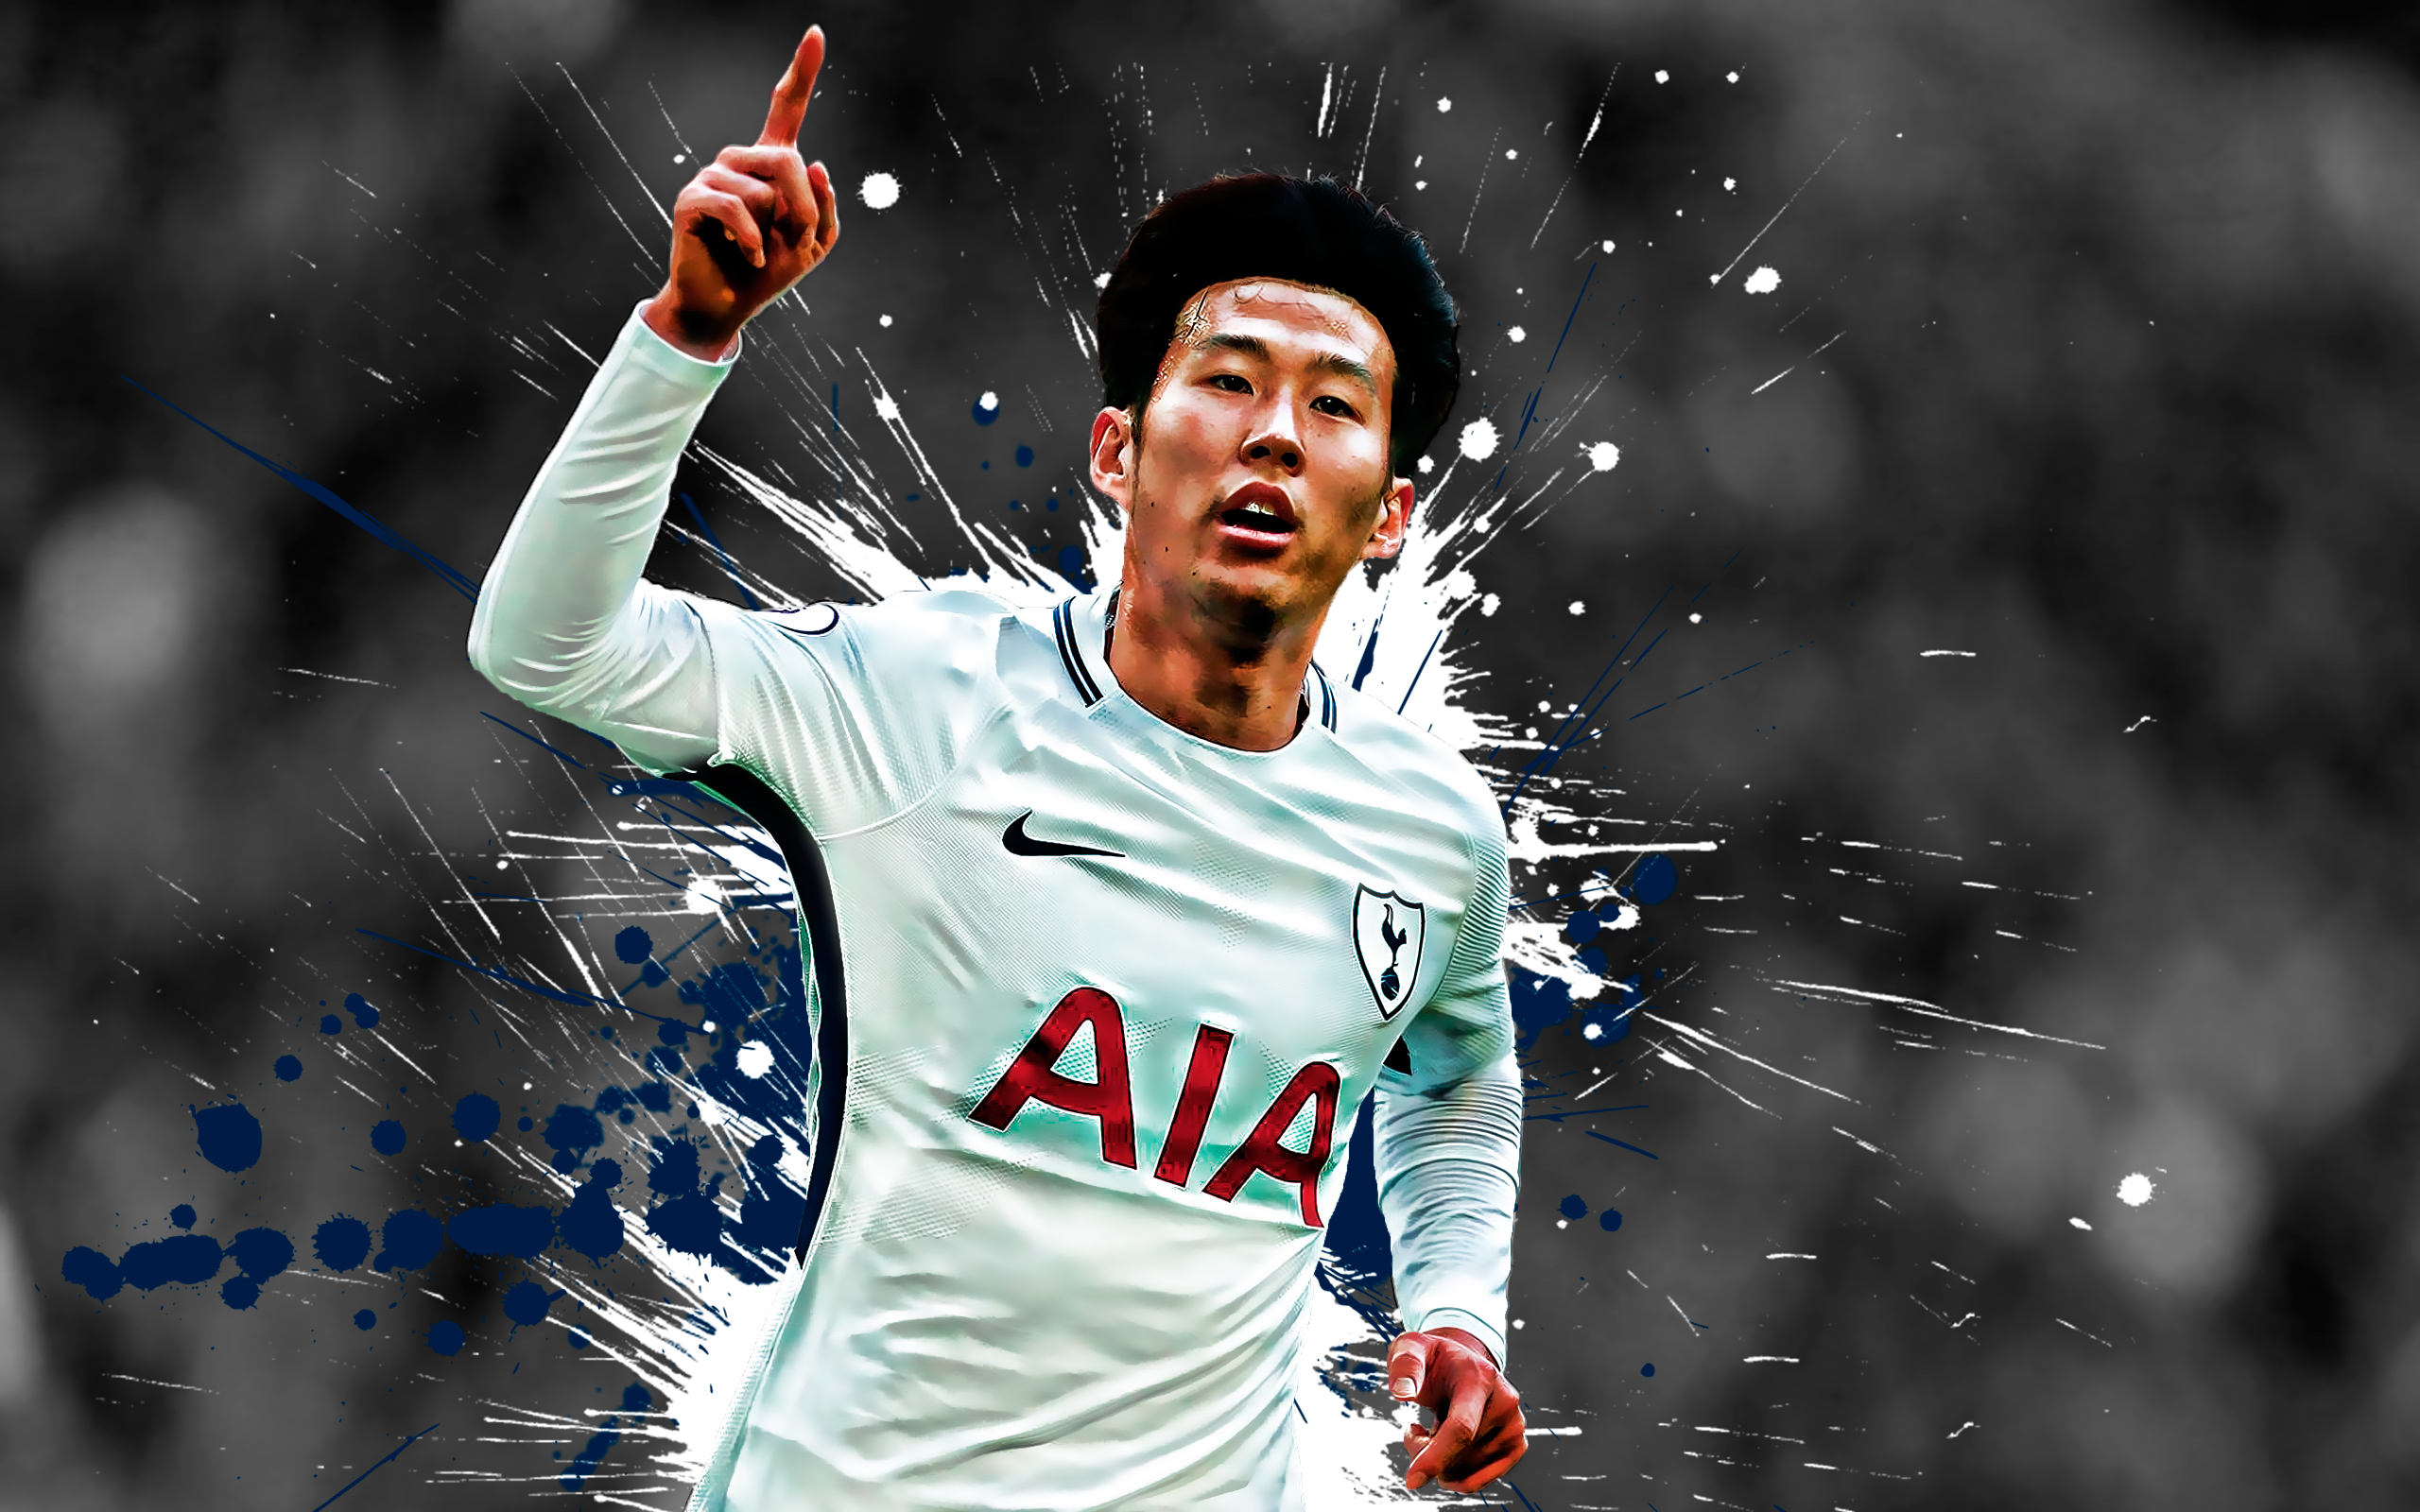 Son Heung Min HD Wallpaper Background Image 2560x1600 ID 2560x1600